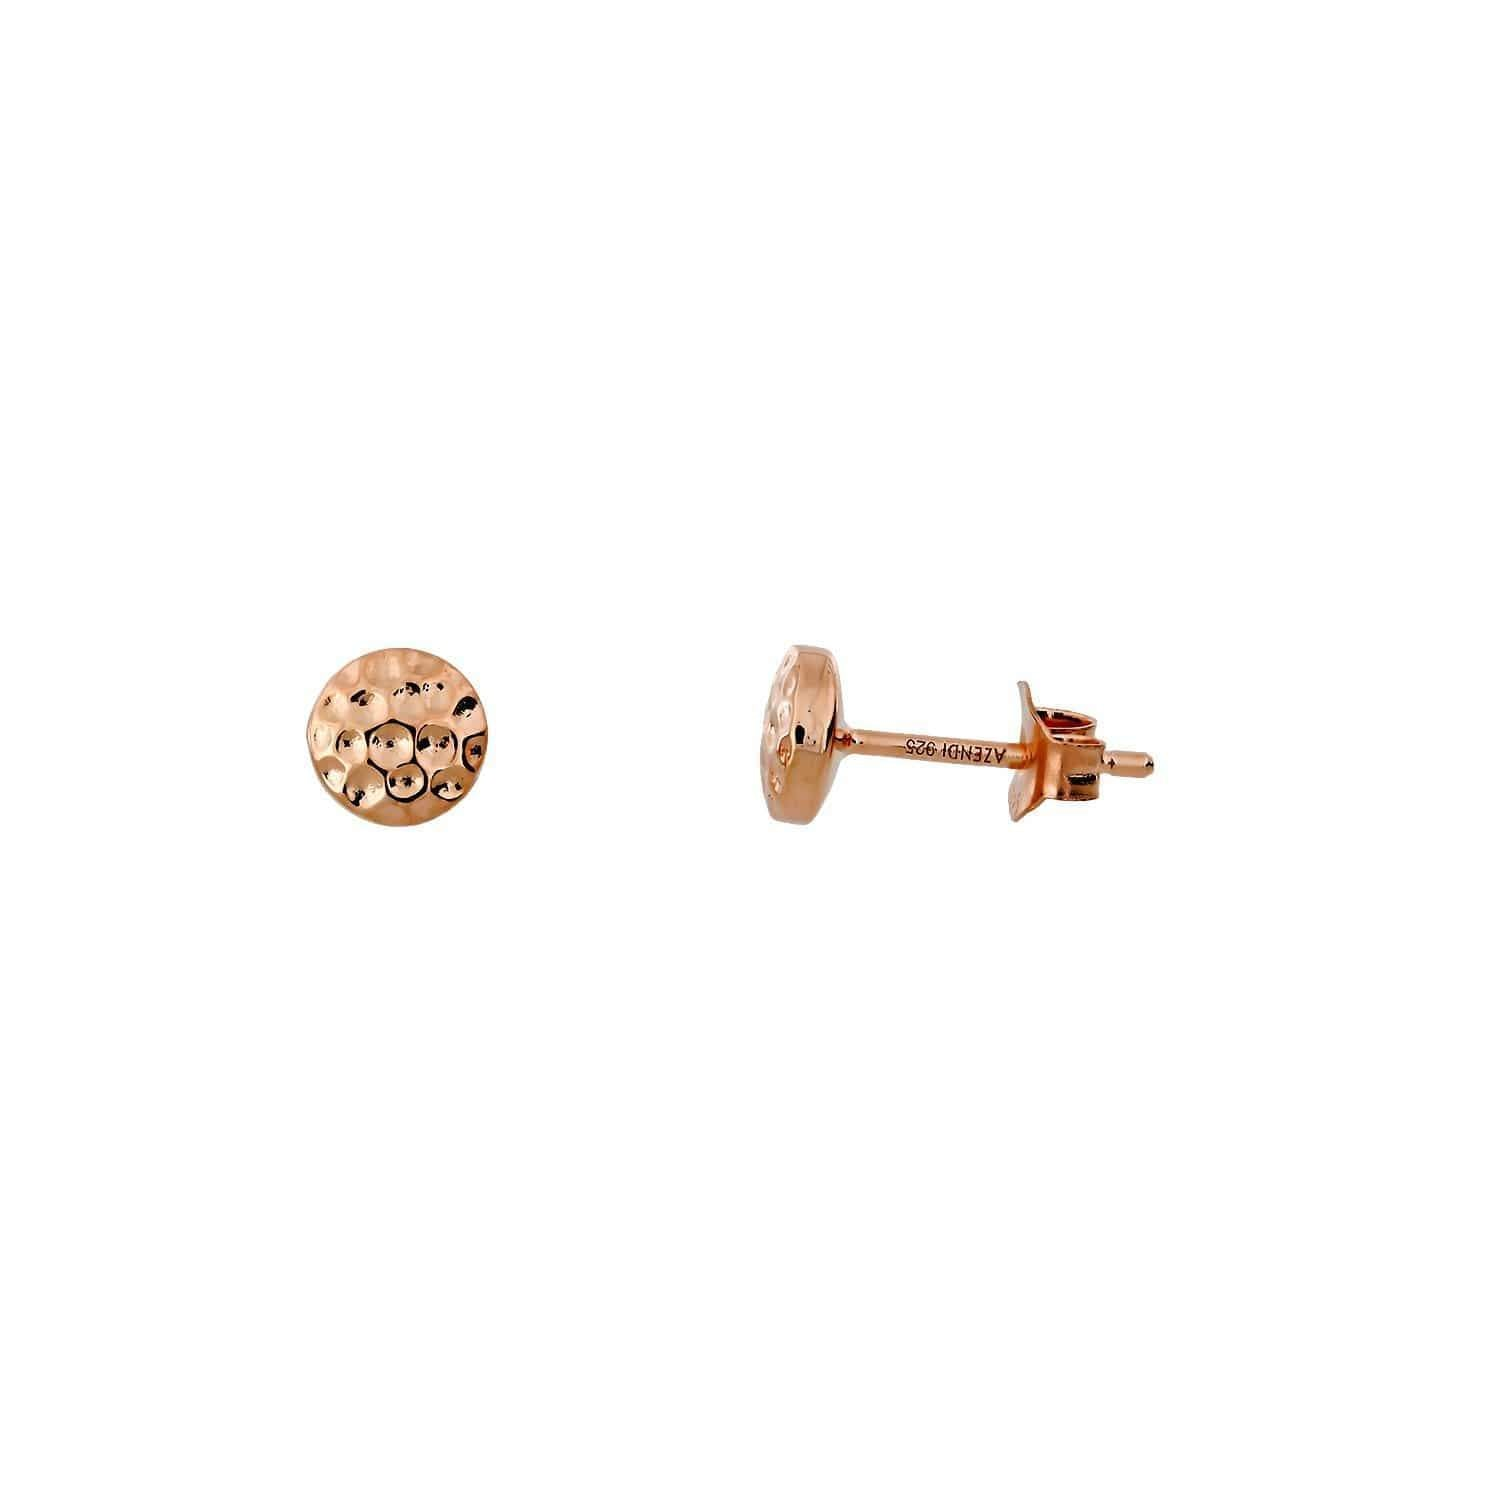 6mm / Rose Gold Vermeil Planished Double Curved Button Stud Earrings - Rose Gold Vermeil